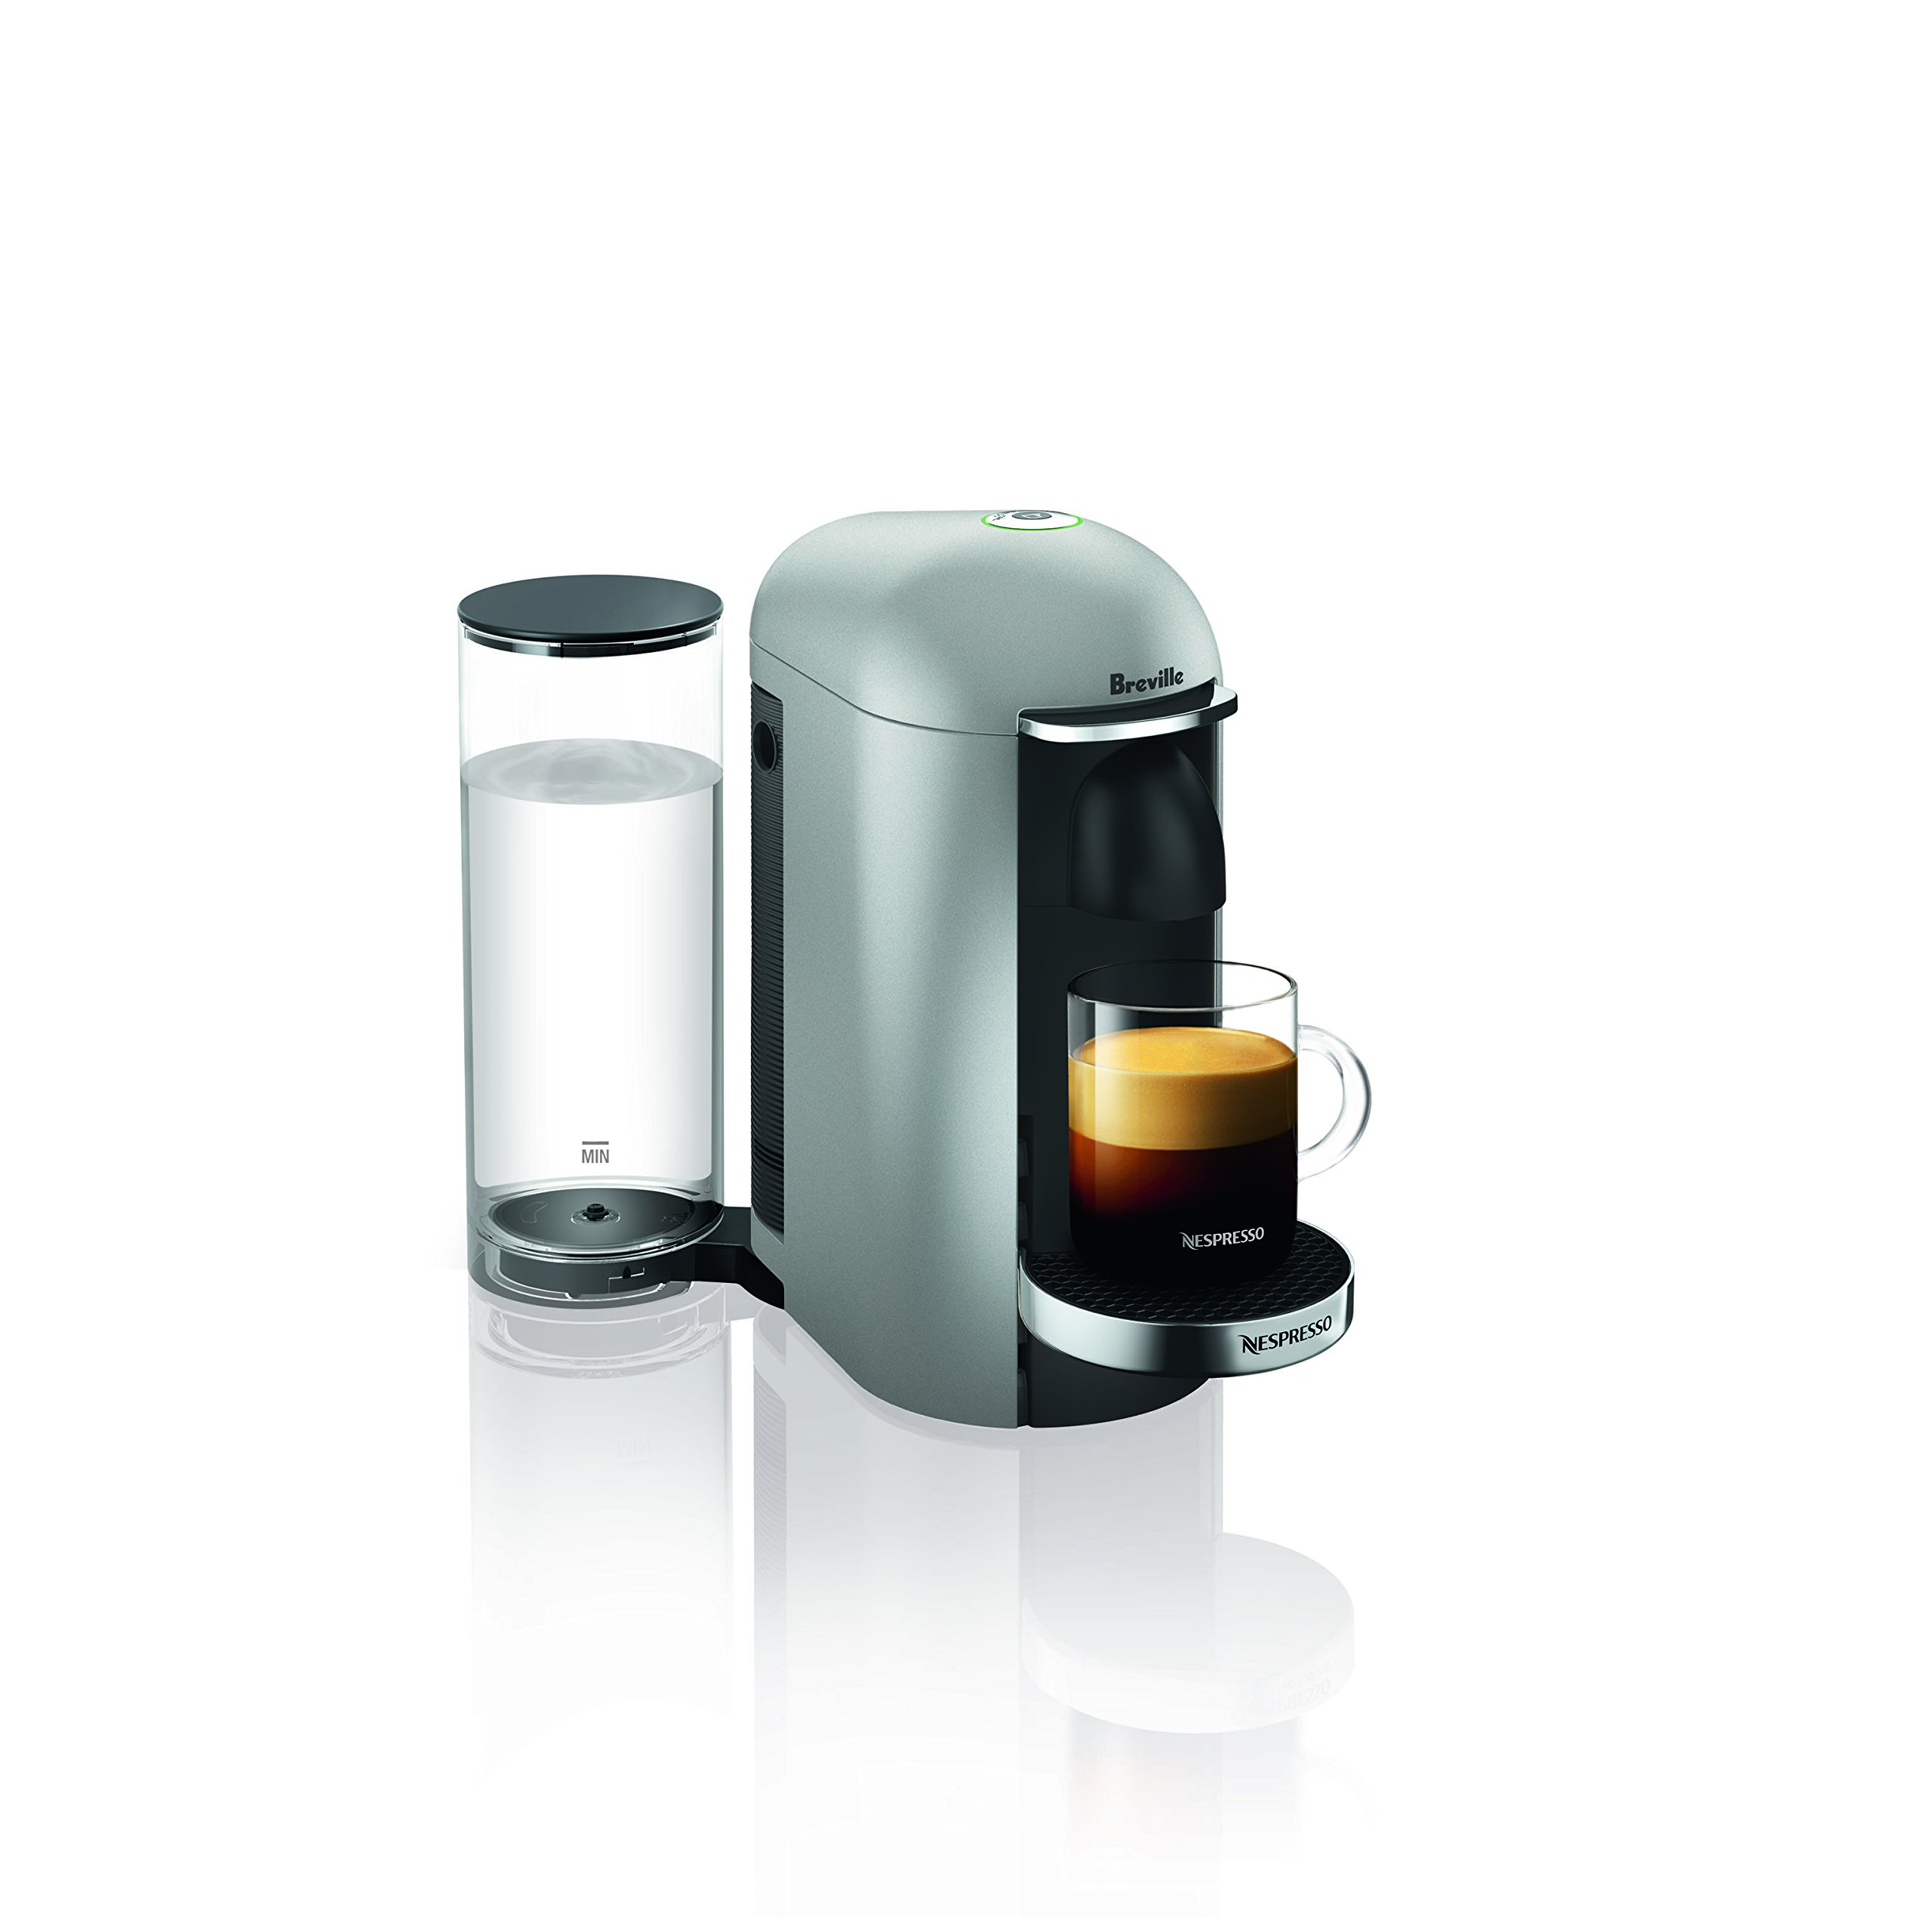 Nespresso VertuoPlus Deluxe Coffee and Espresso Maker by Breville, Silver